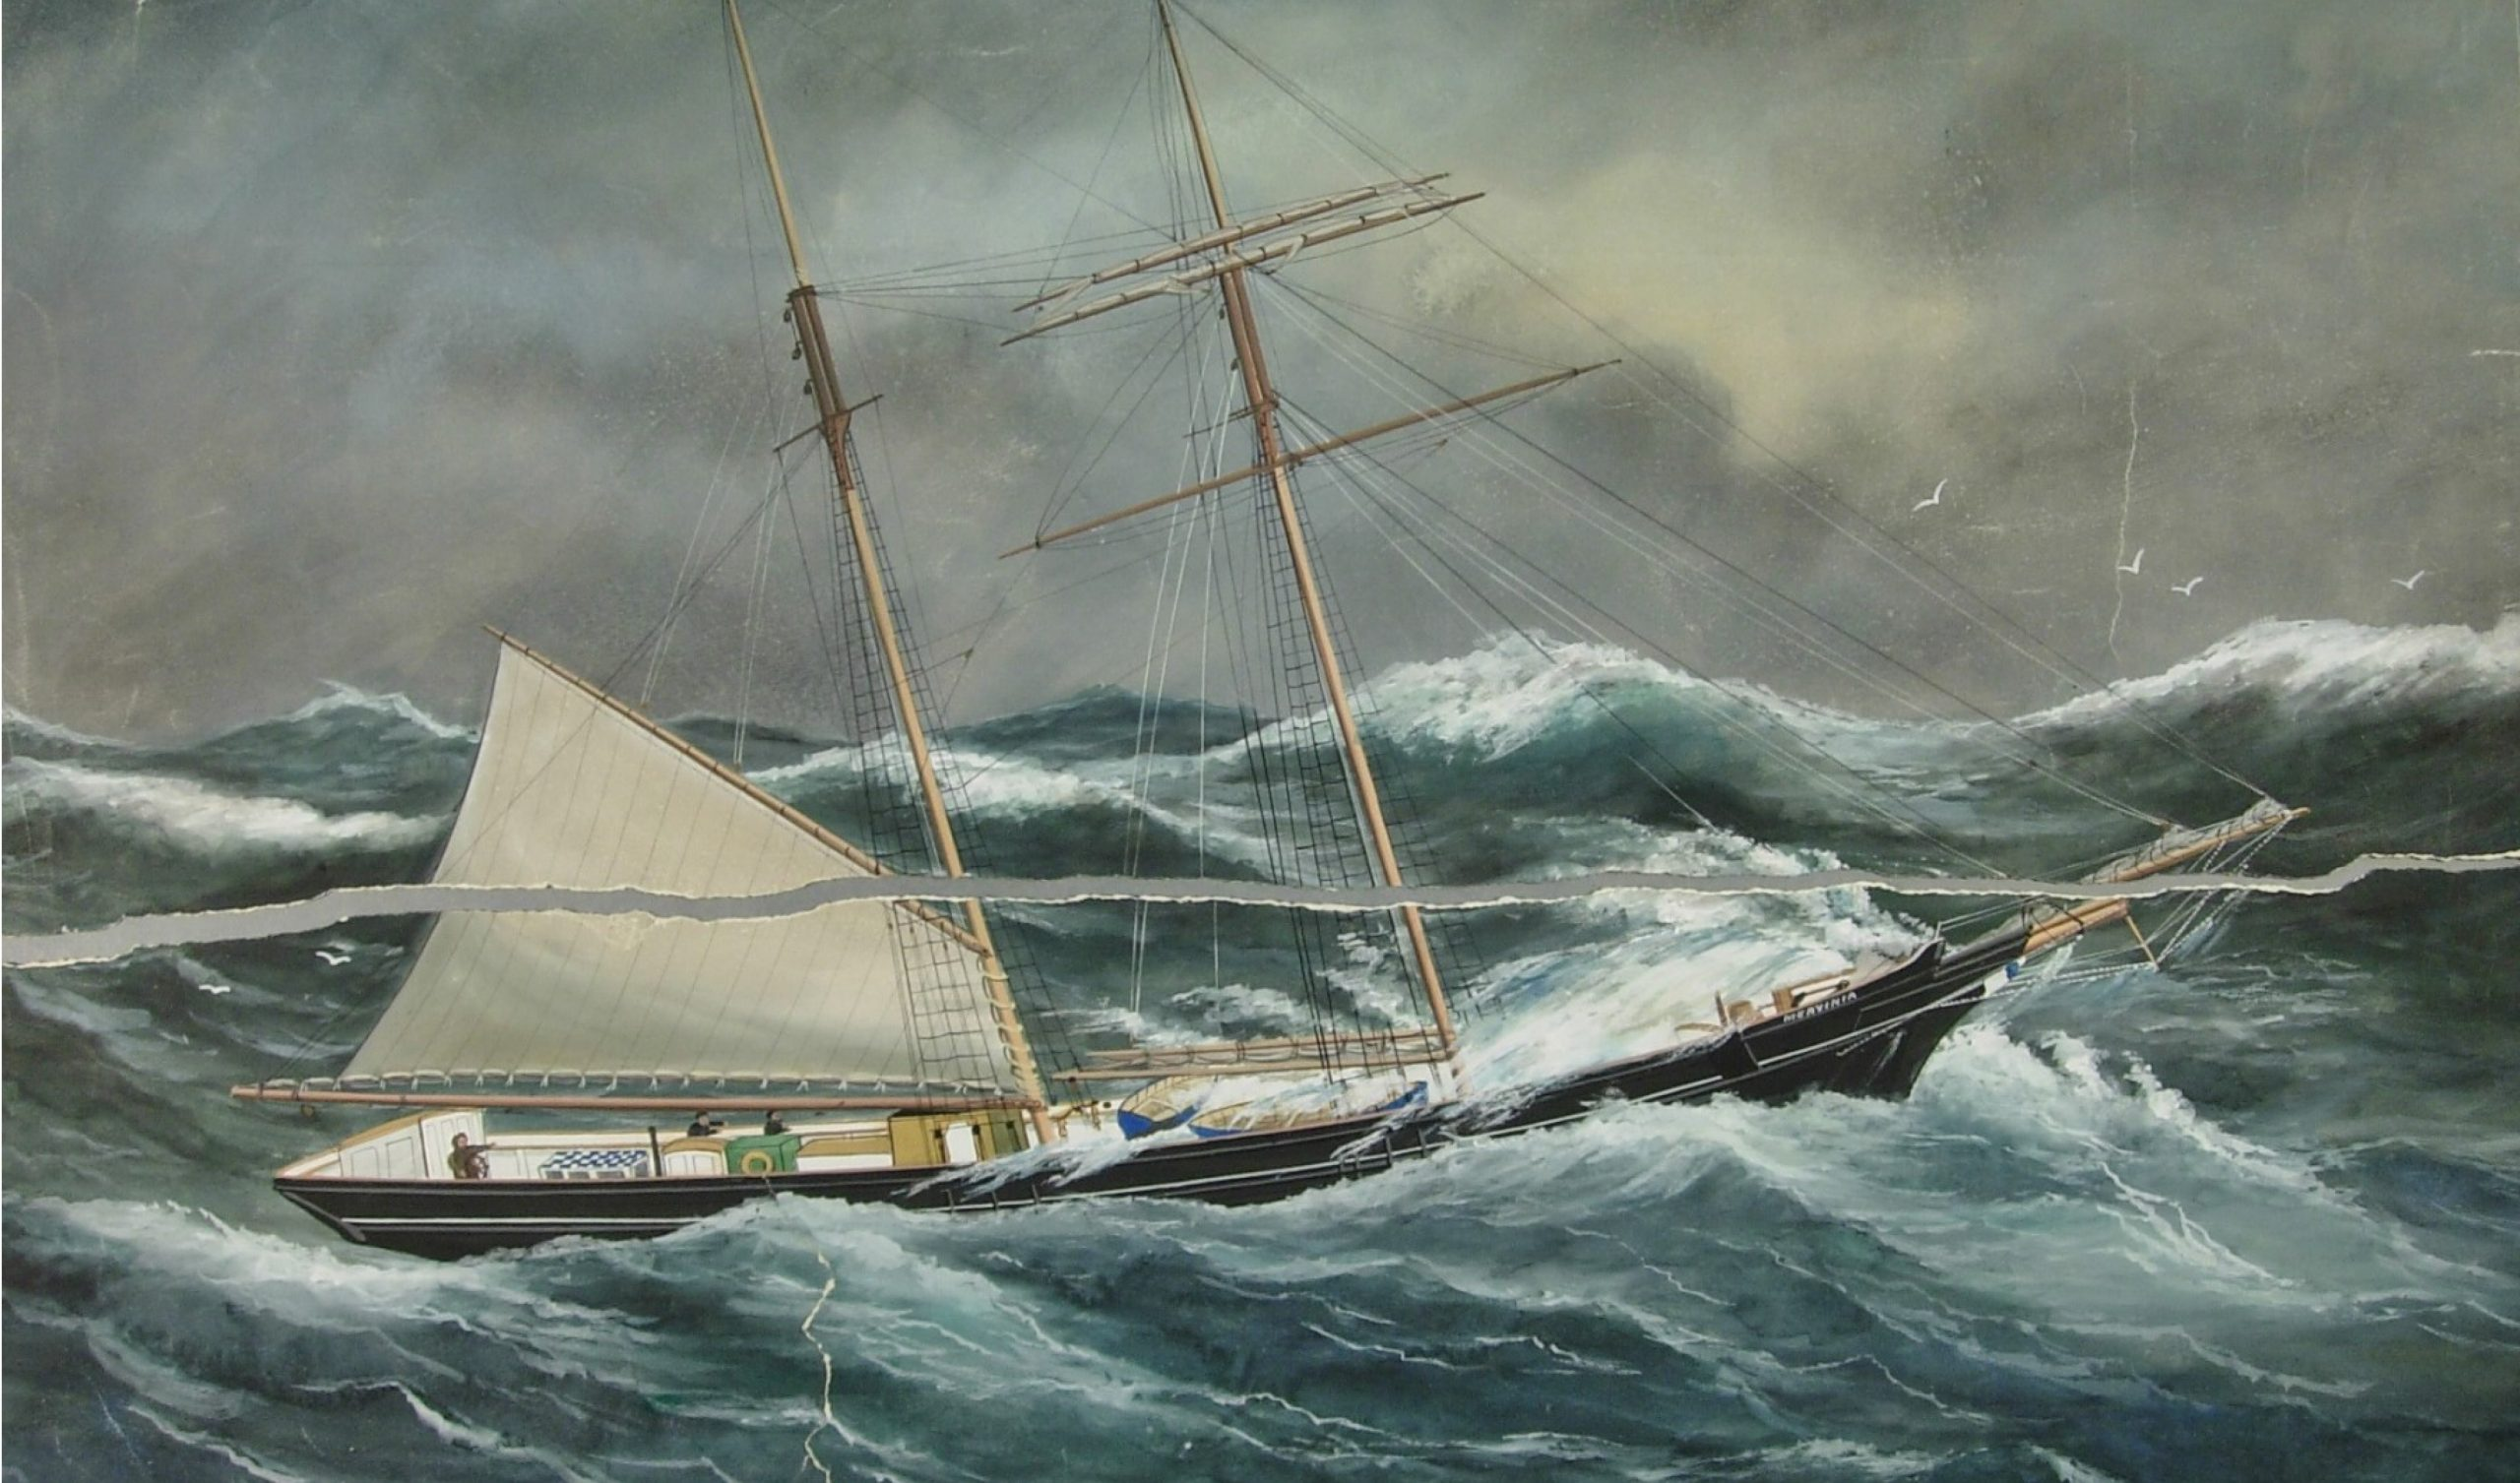 Reuben Chappell - before conservation